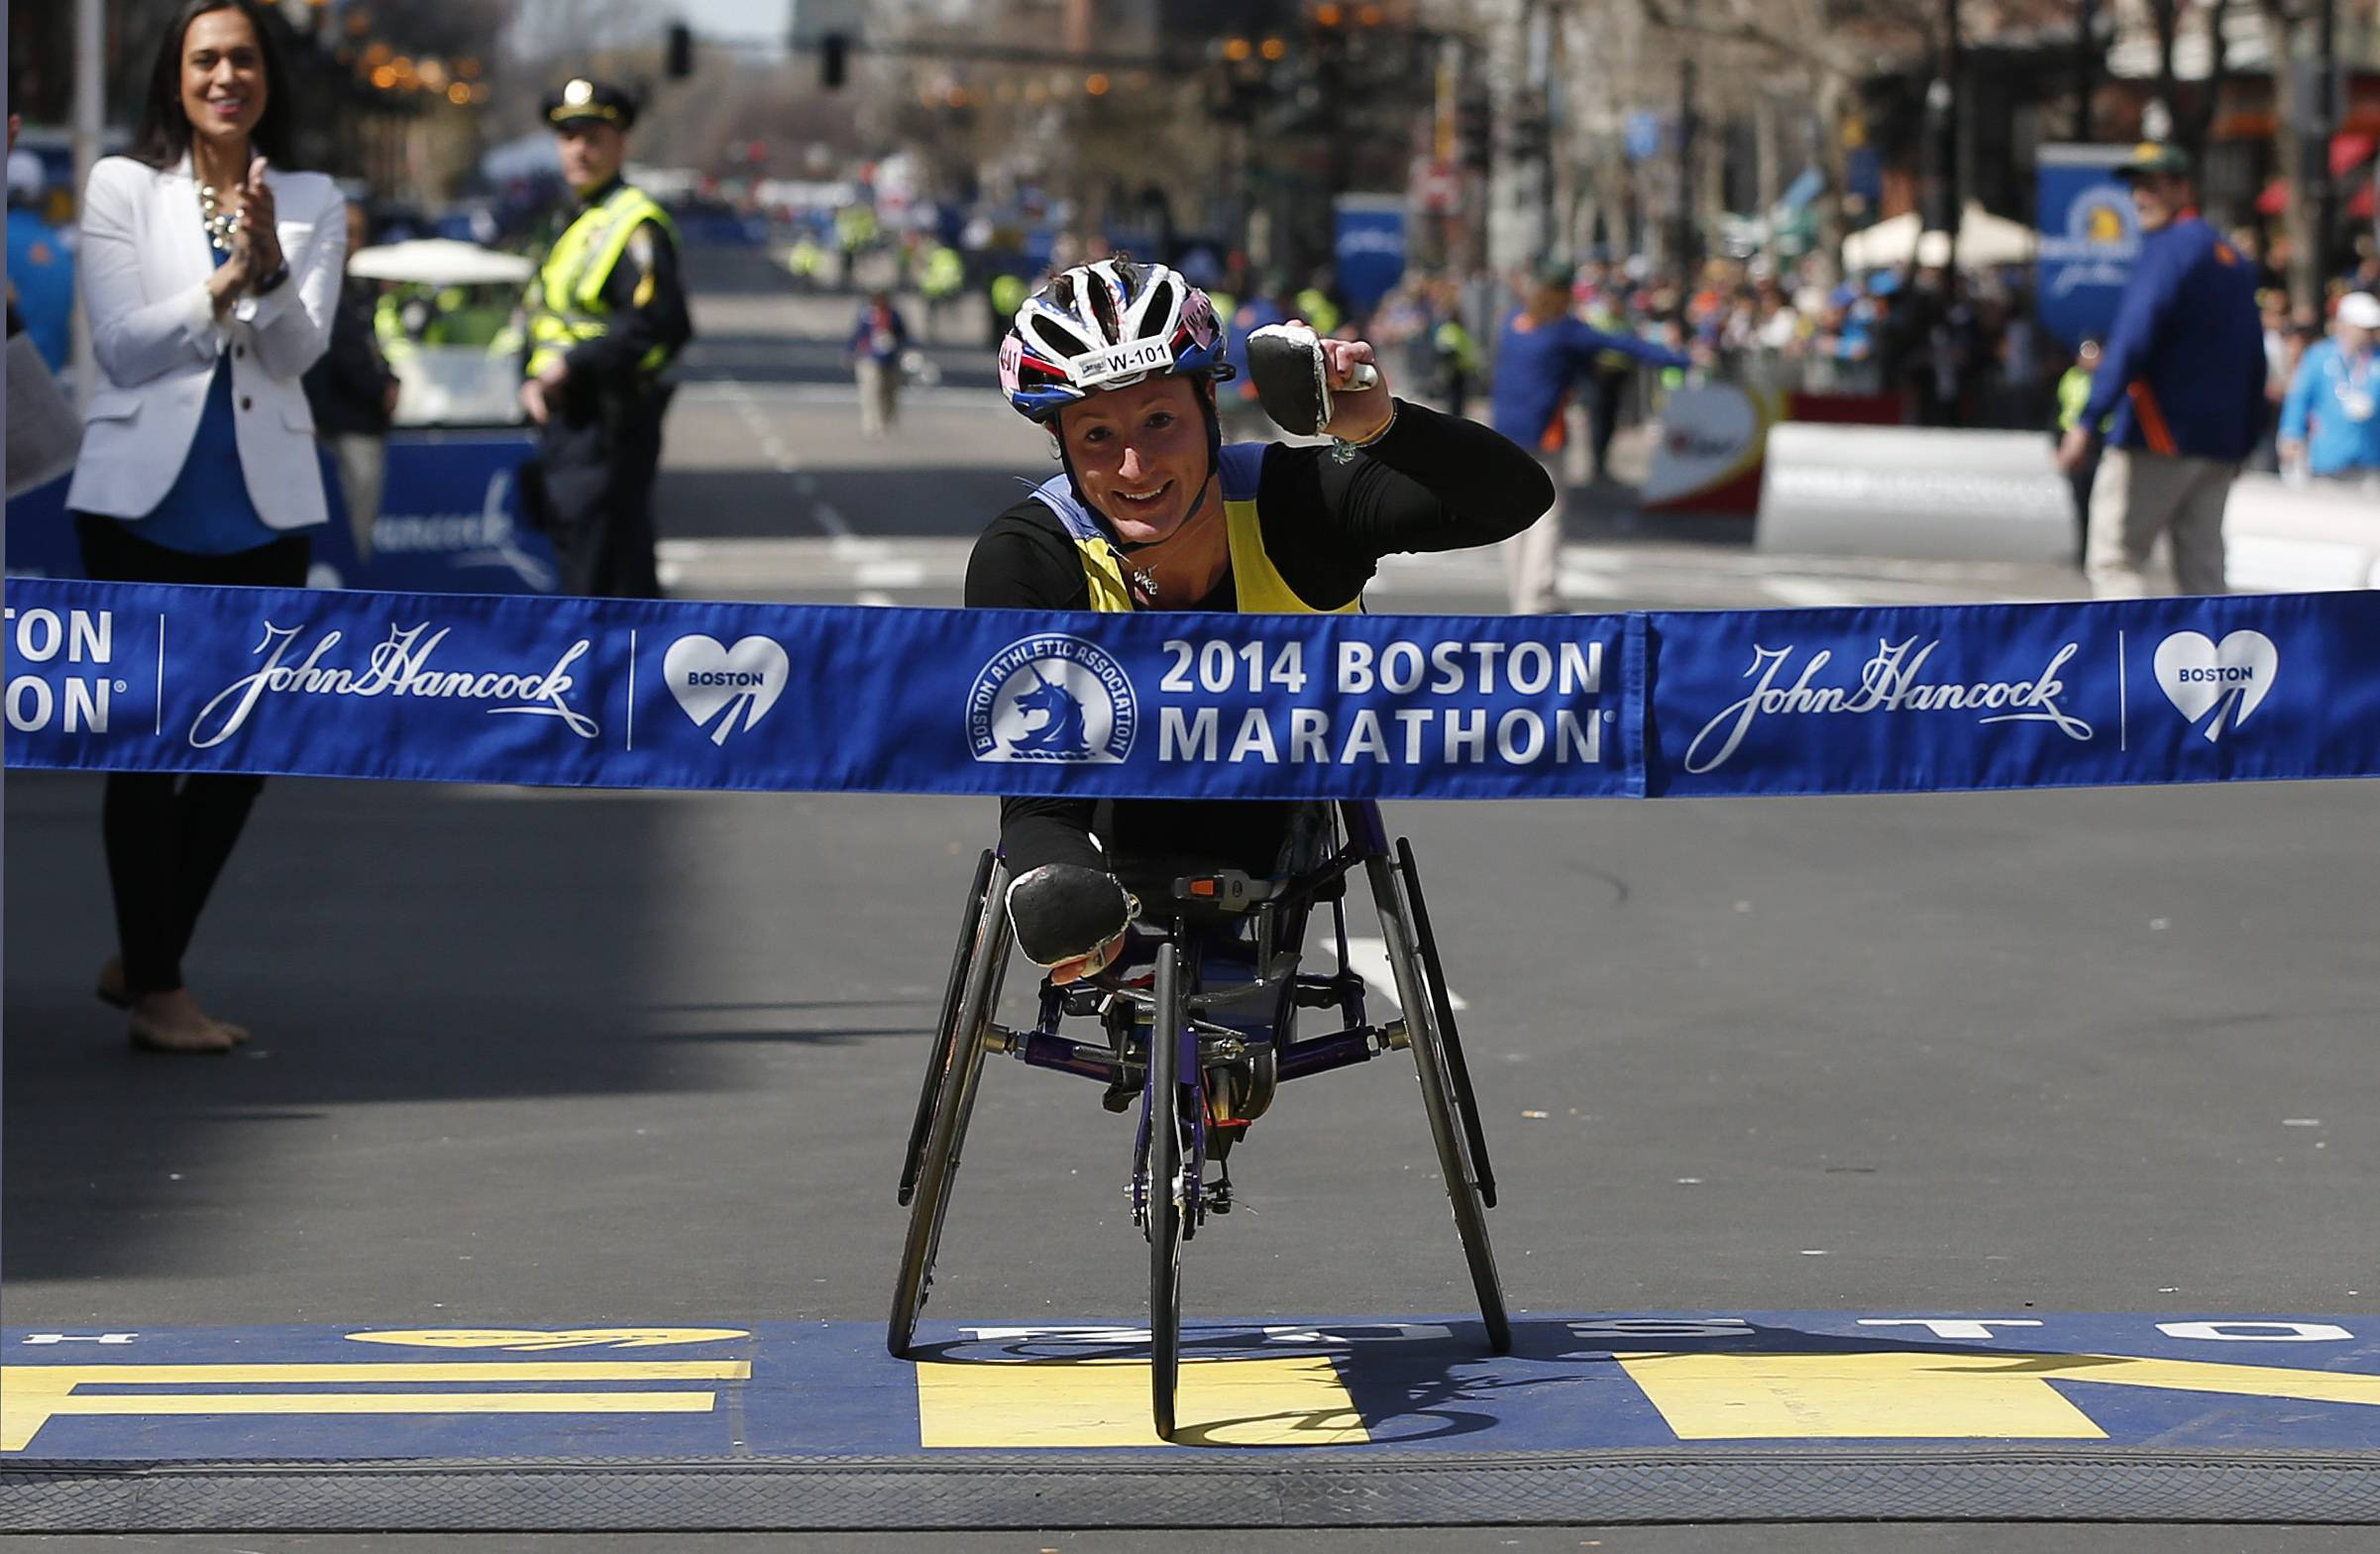 Tatyana McFadden, of the University of Illinois, gestures before breaking the tape to win the women's wheelchair division .